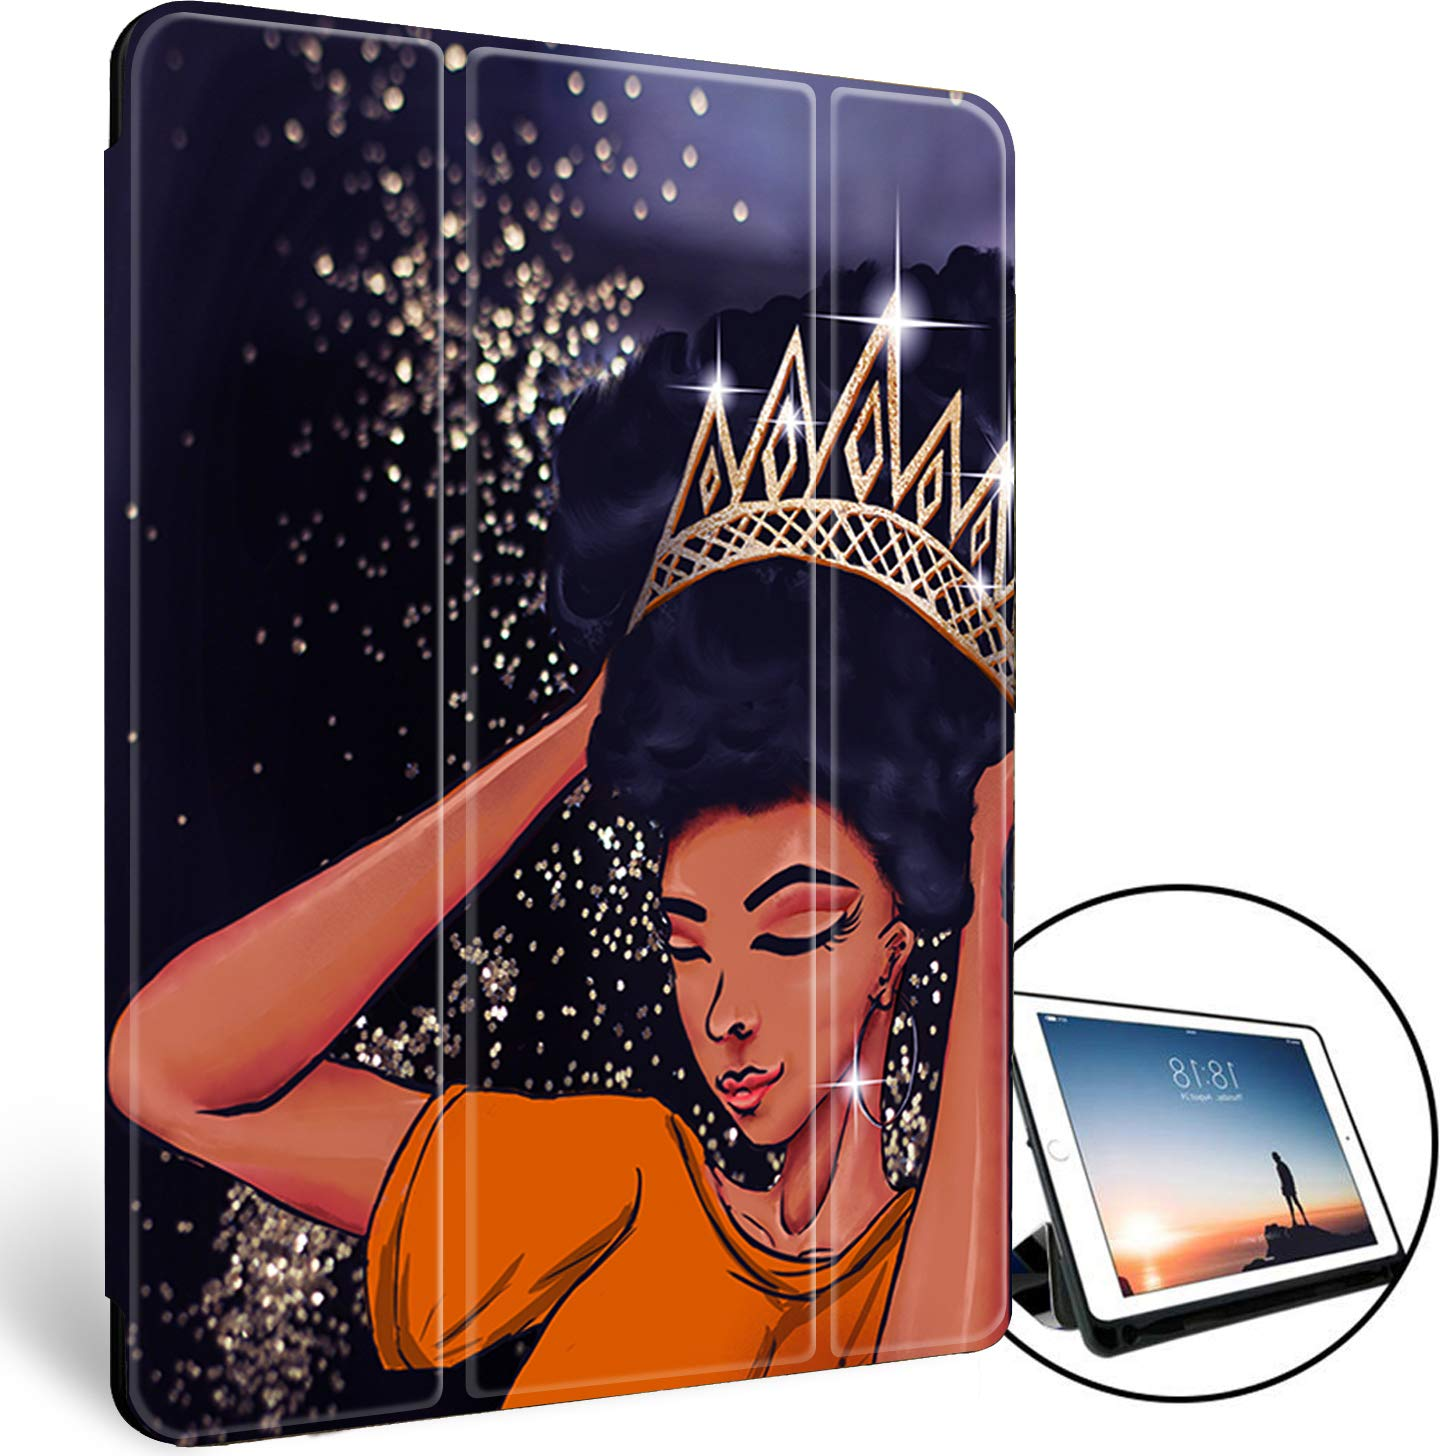 Hunthawk Case for iPad 9.7 2018/2017, Lightweight Smart Cover with Auto Sleep/Wake Standing Protective Cover, Hard Back Cover for iPad 9.7 iPad 5th / 6th Generation with Pencil Holder, Crown Girl